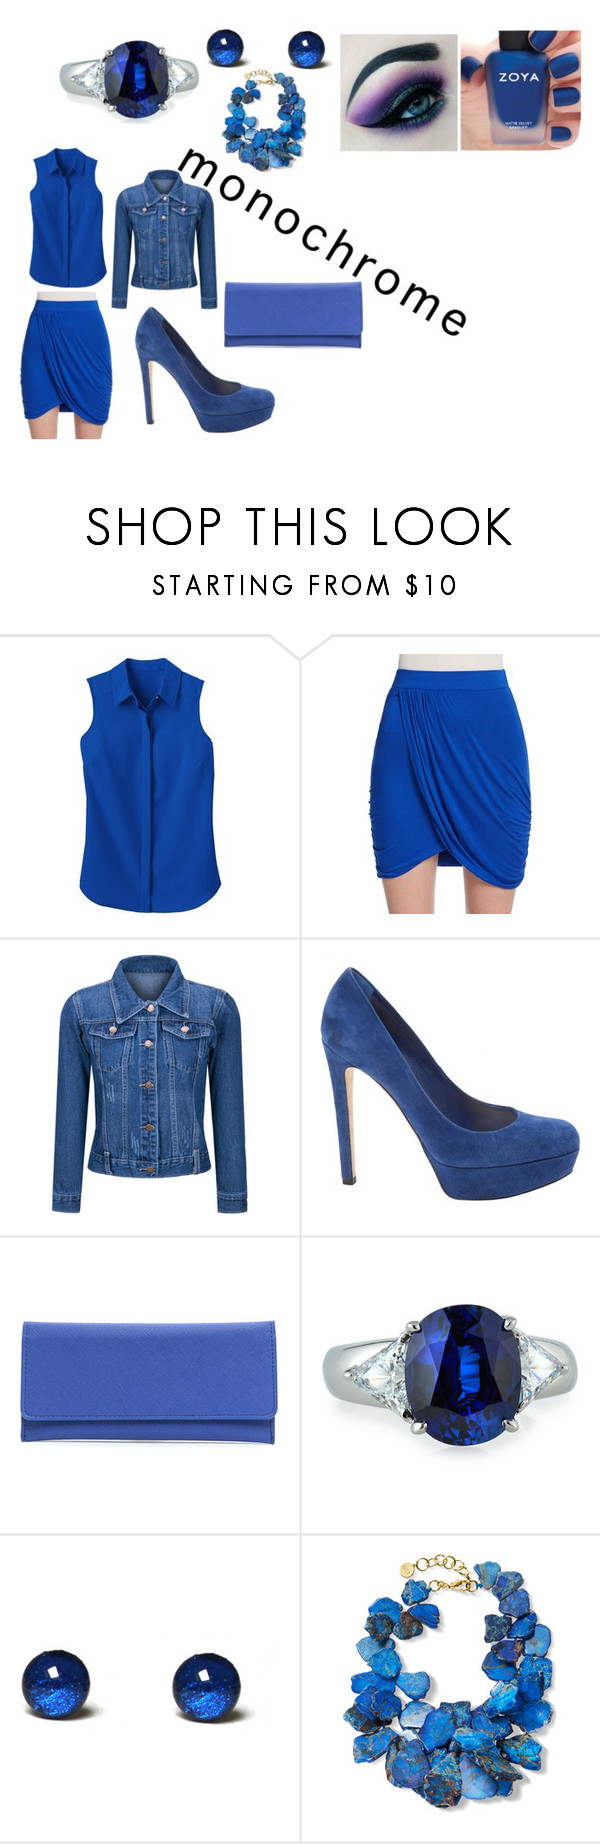 """""""Blue Monochrome"""" by lunarwolfdemon ❤ liked on Polyvore featuring TravelSmith, Vanity Room, WithChic, Christian Dior, Fantasia by DeSerio, NEST Jewelry, Zoya, Disney and monochrome"""